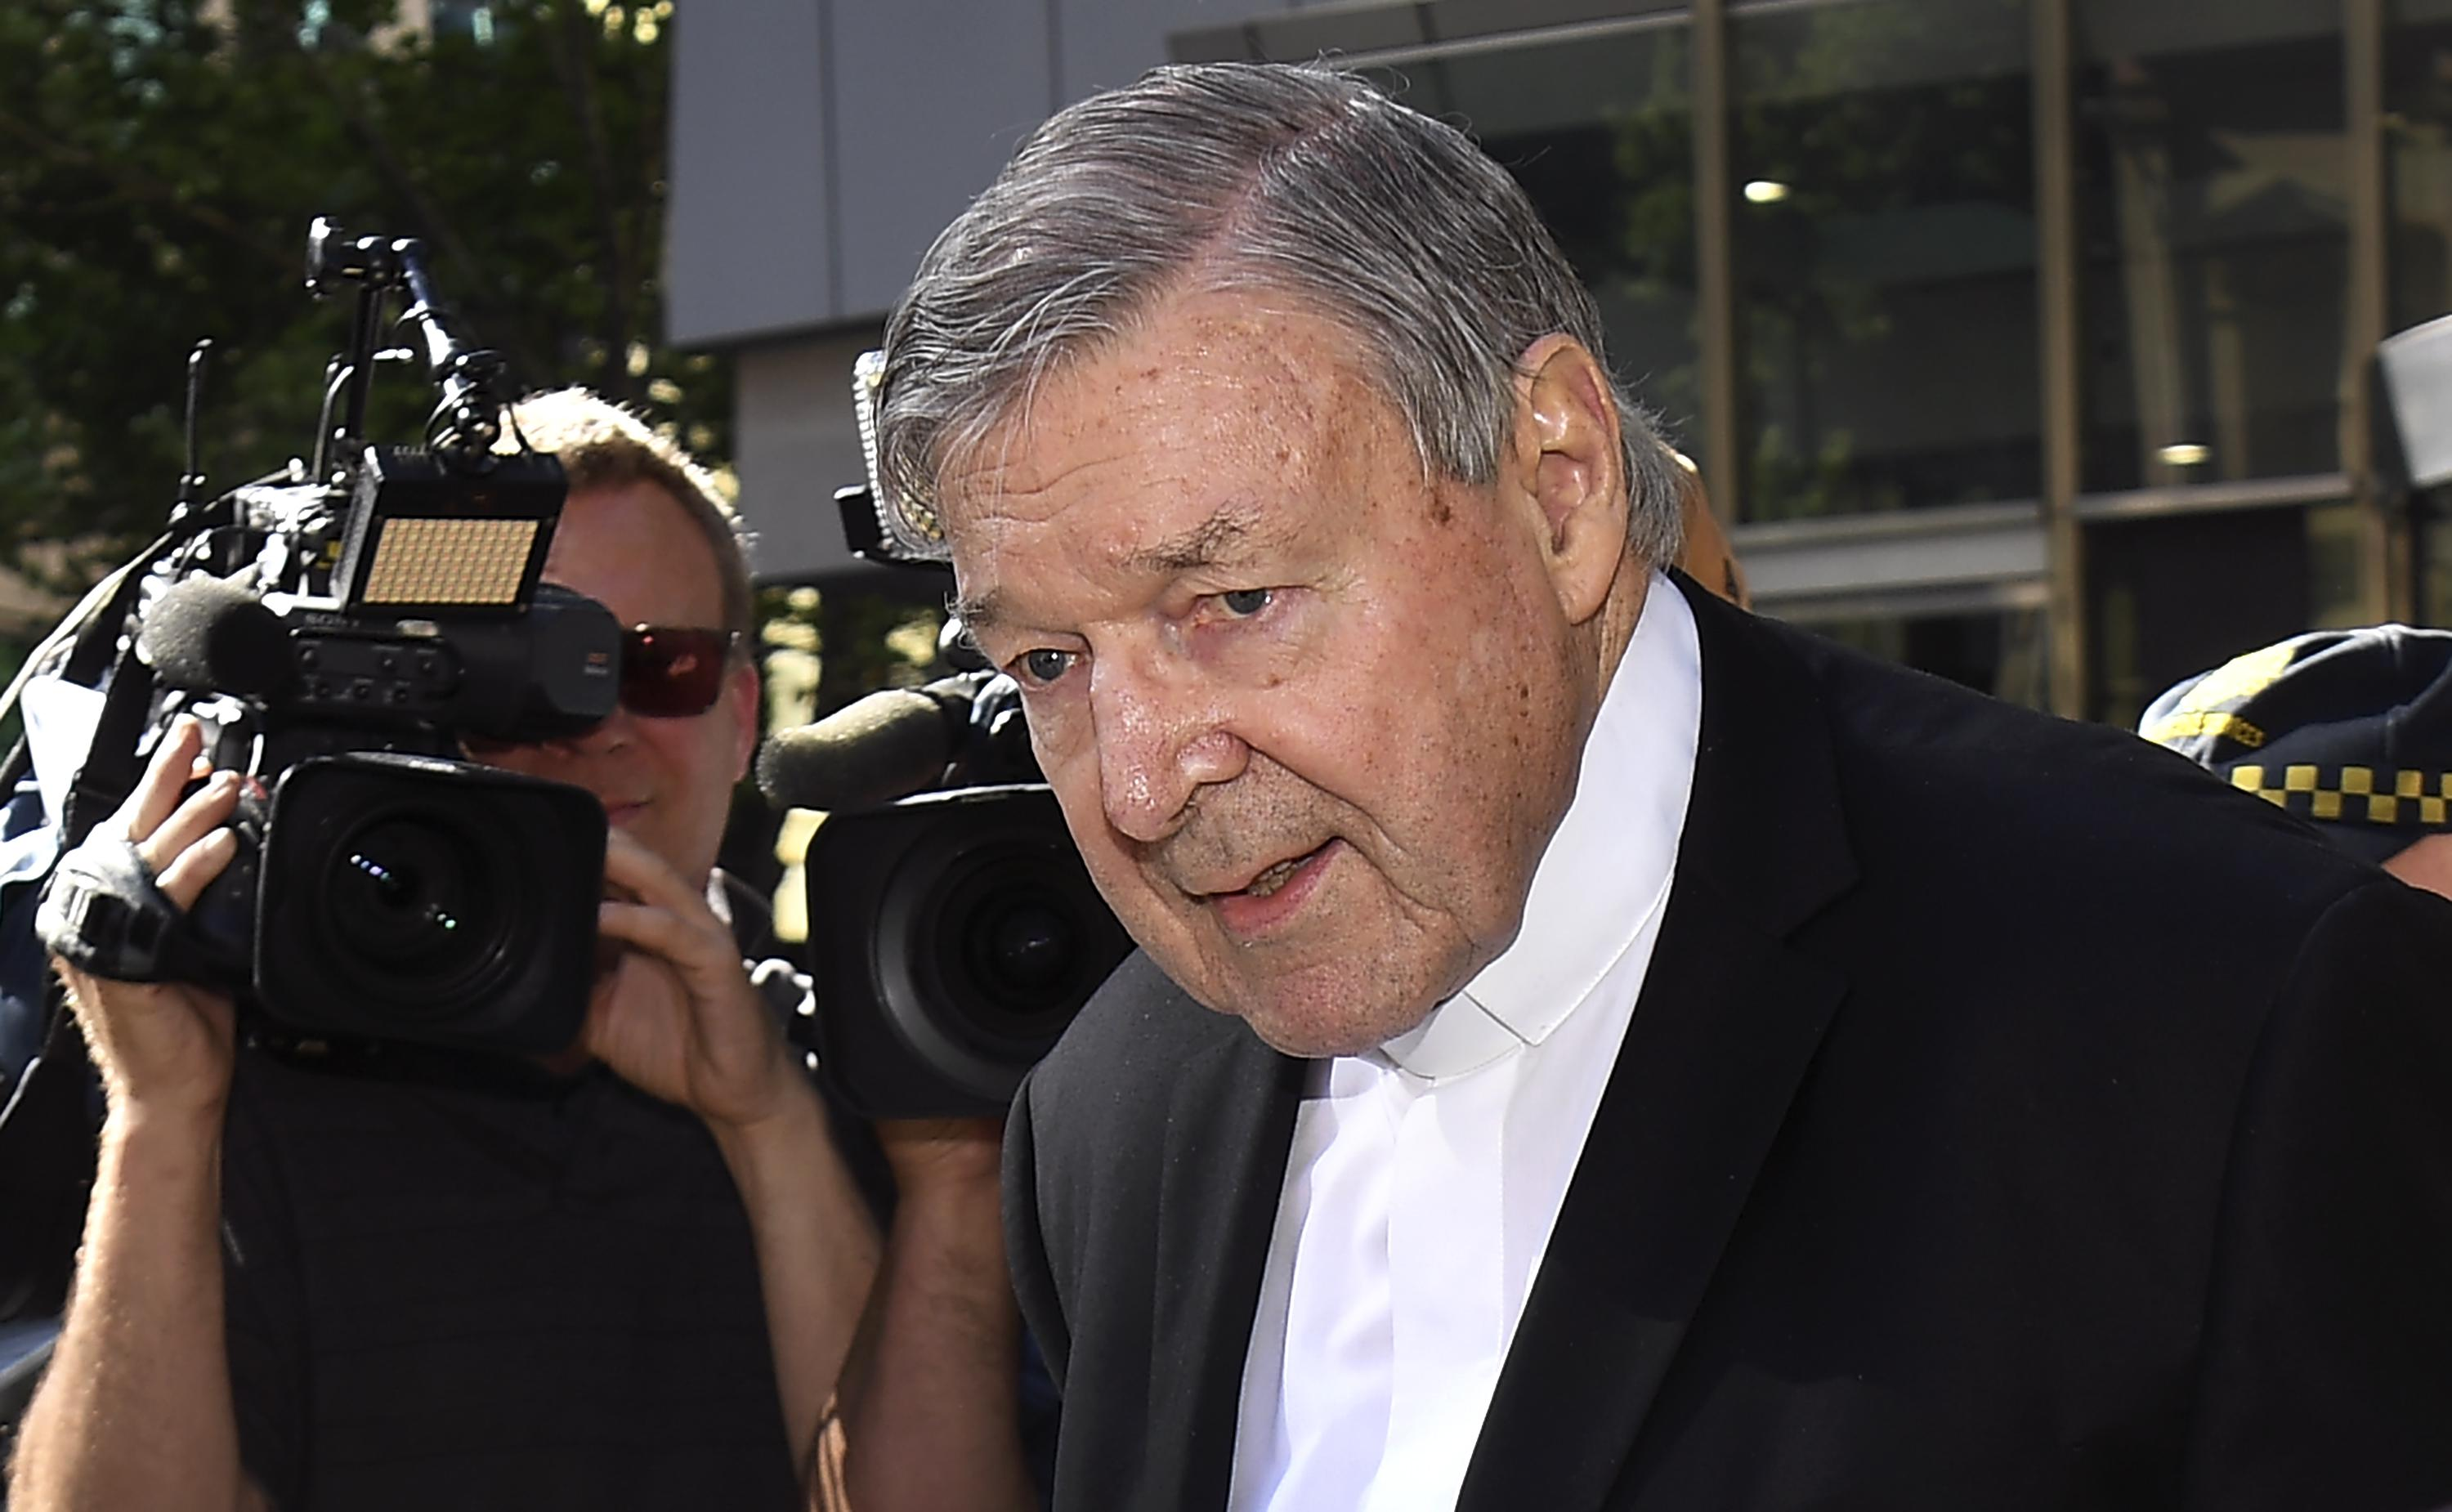 Pell, with his head bent downward, walks through a crowd of reporters. Behind him, a camera is trained on him.